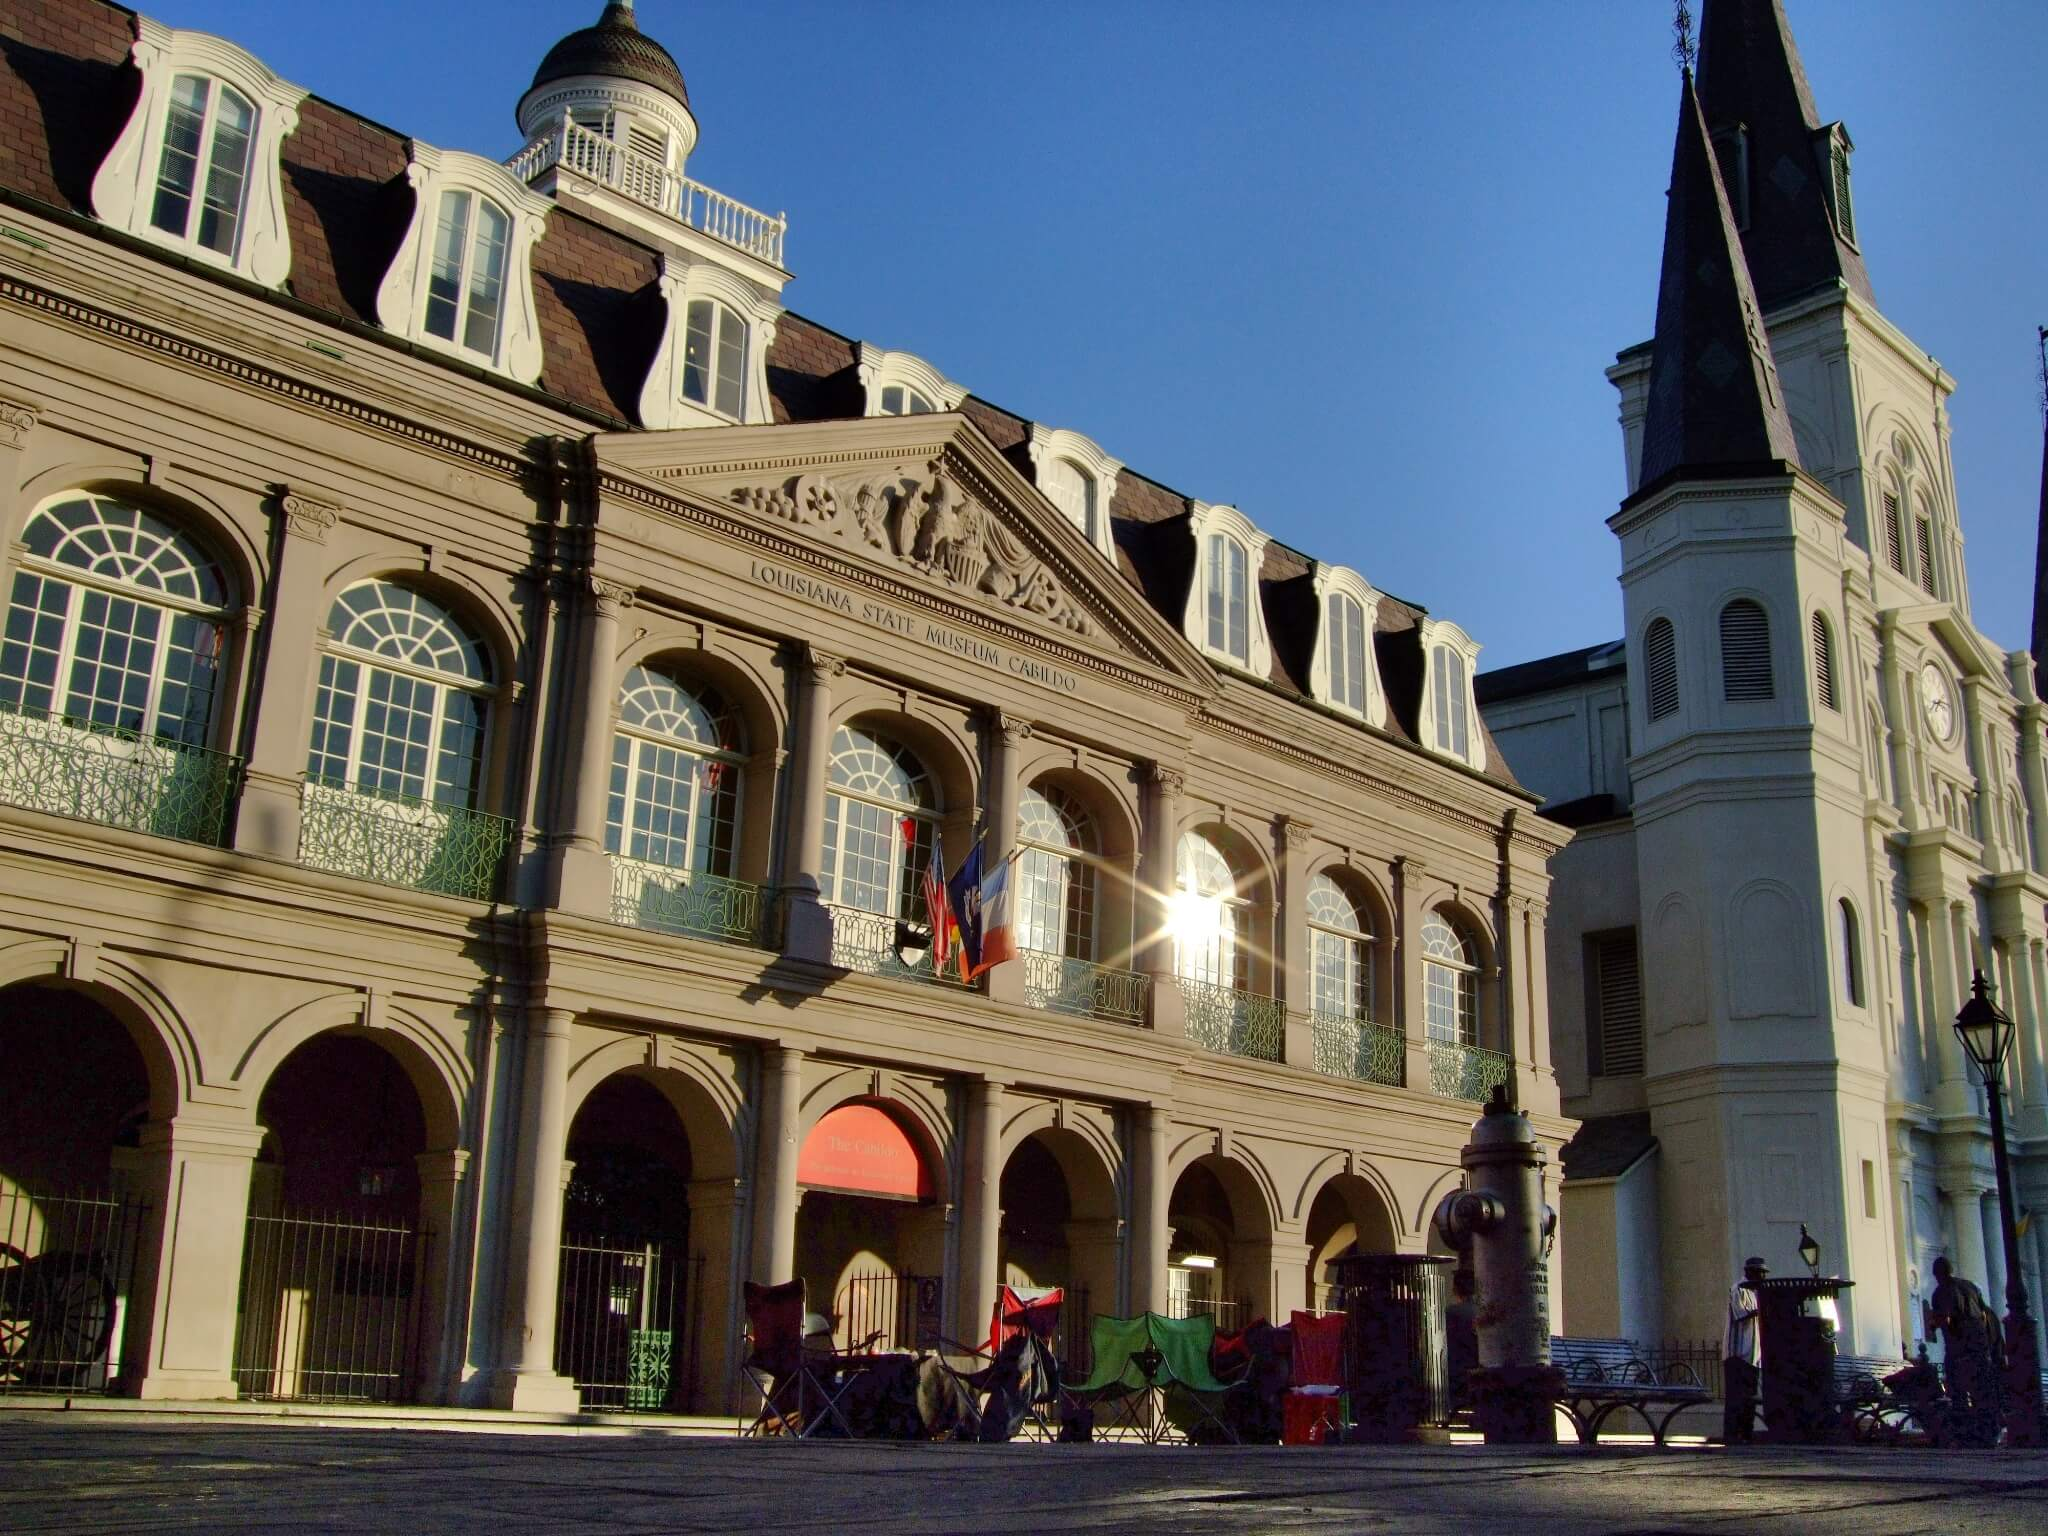 The Cabildo Things to do in New Orleans